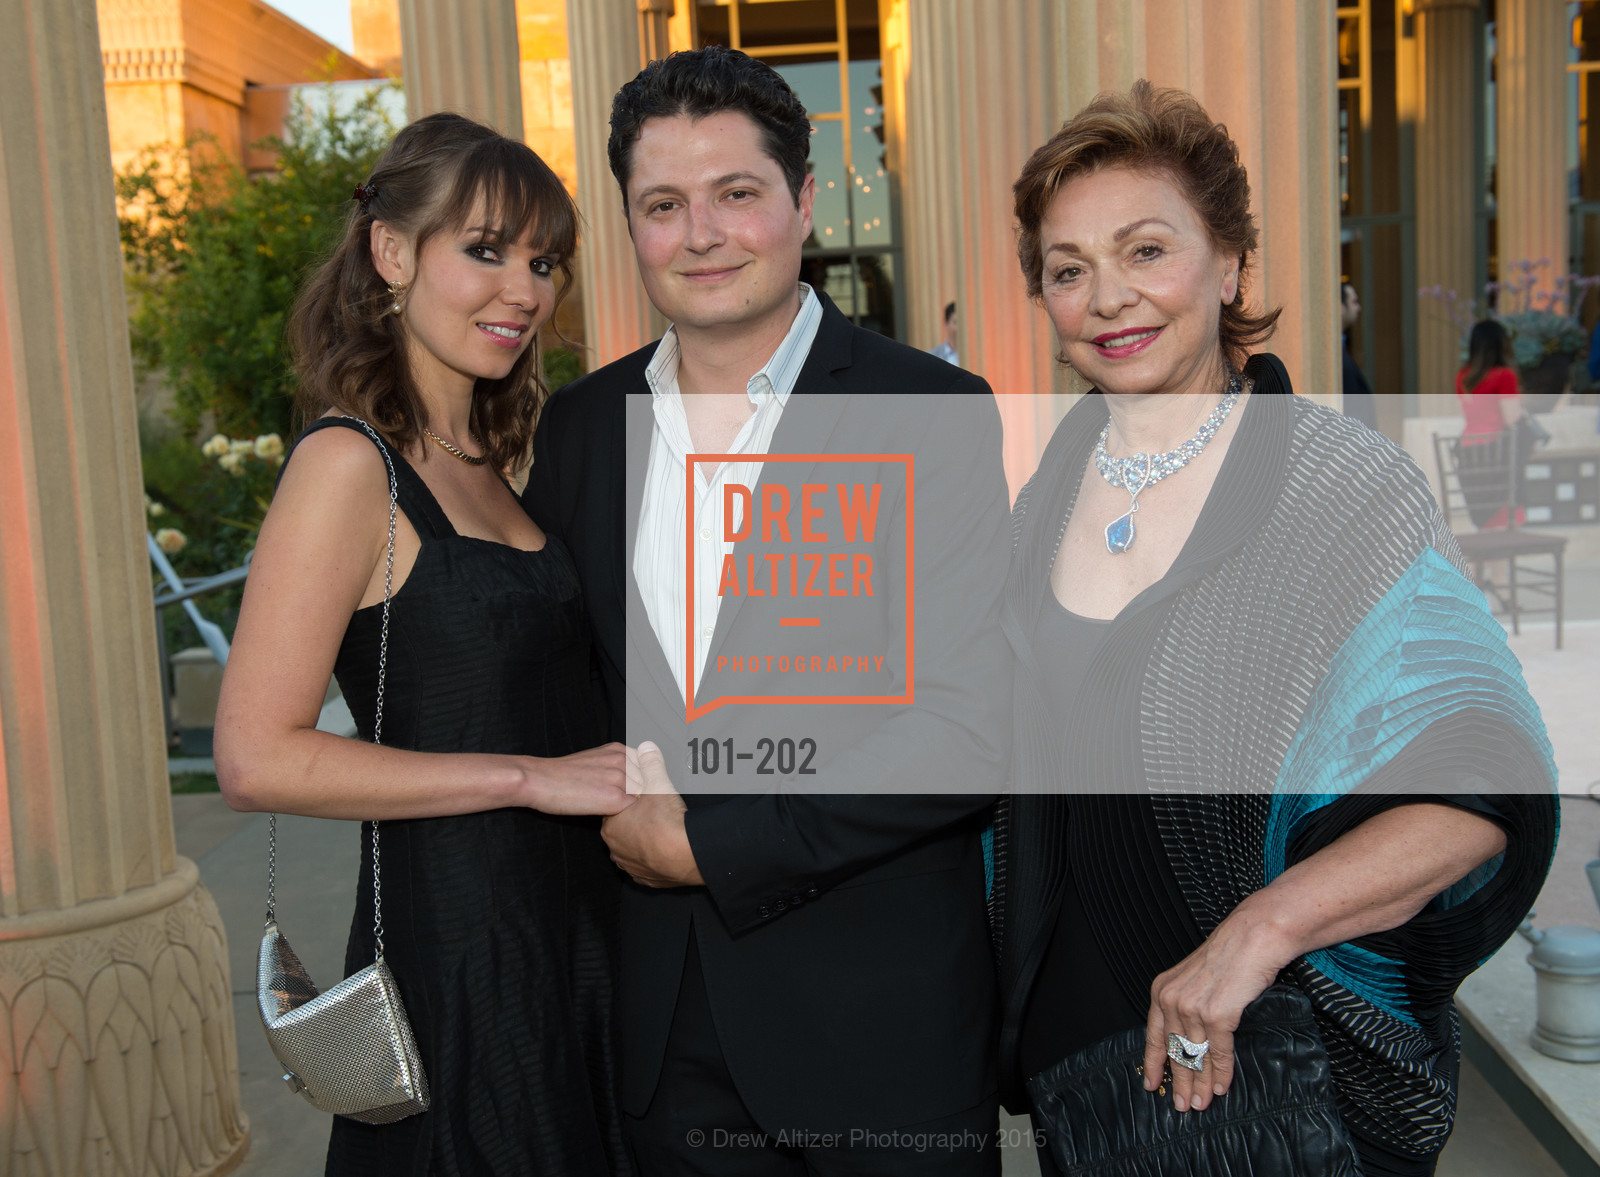 Olya Troxel, Serge Troxel, Maria Manetti Shrem, Festival del Sole Patron Dinner at Darioush Winery, Darioush Winery. 4240 Silverado Trail, July 24th, 2015,Drew Altizer, Drew Altizer Photography, full-service agency, private events, San Francisco photographer, photographer california